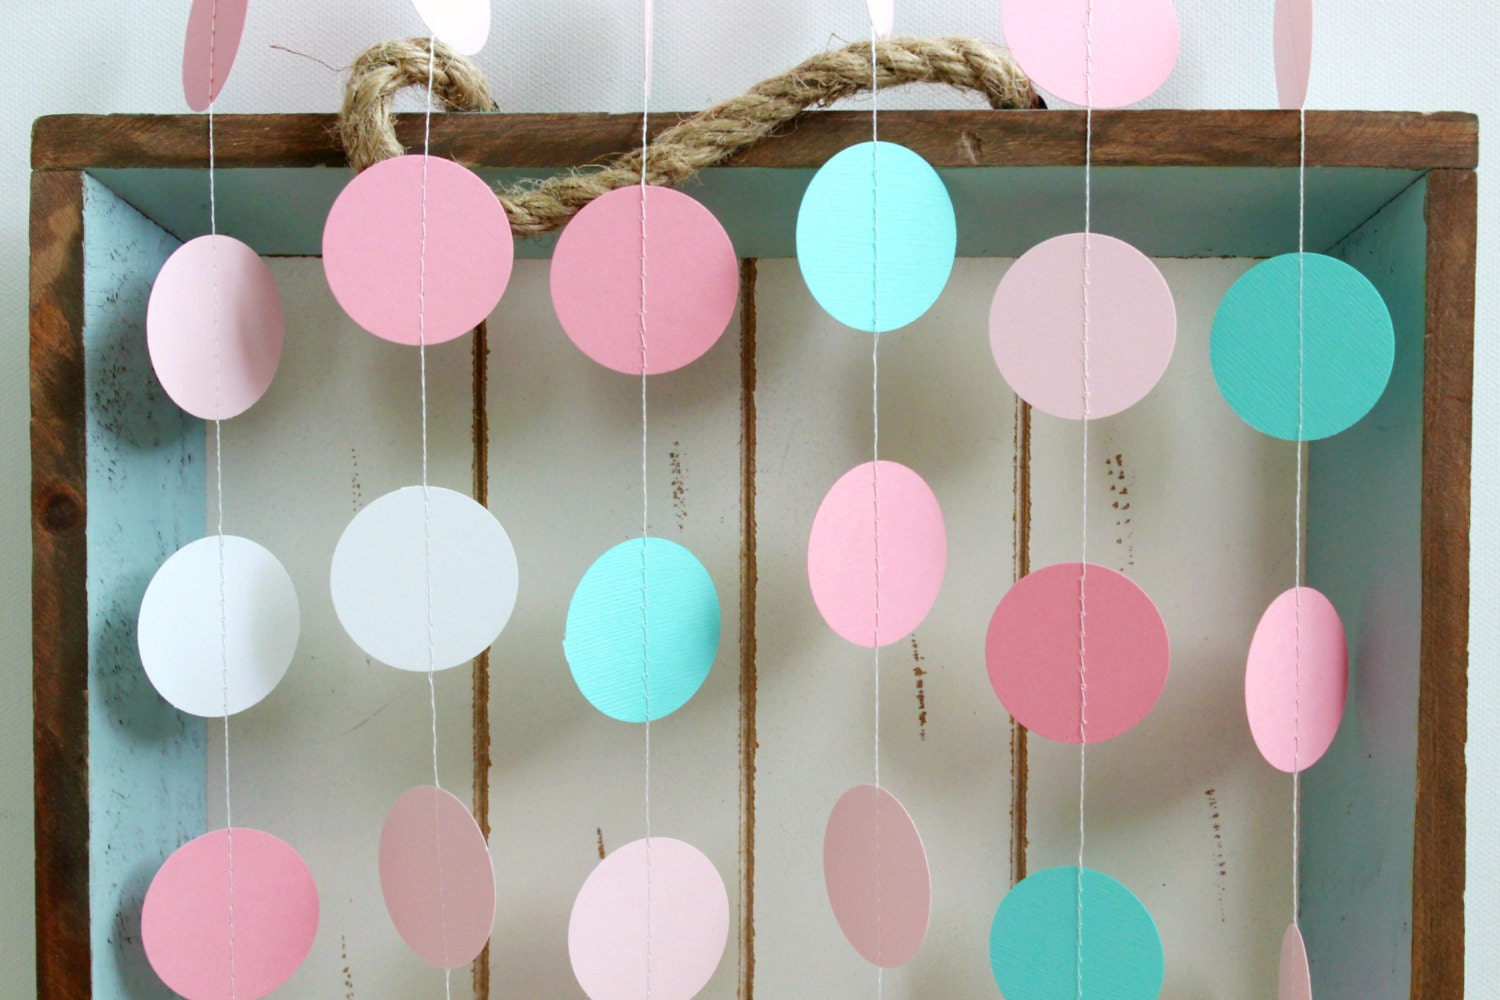 Turquoise Baby Shower Decorations Turquoise White Pink 12 Ft Circle Paper Garland Wedding